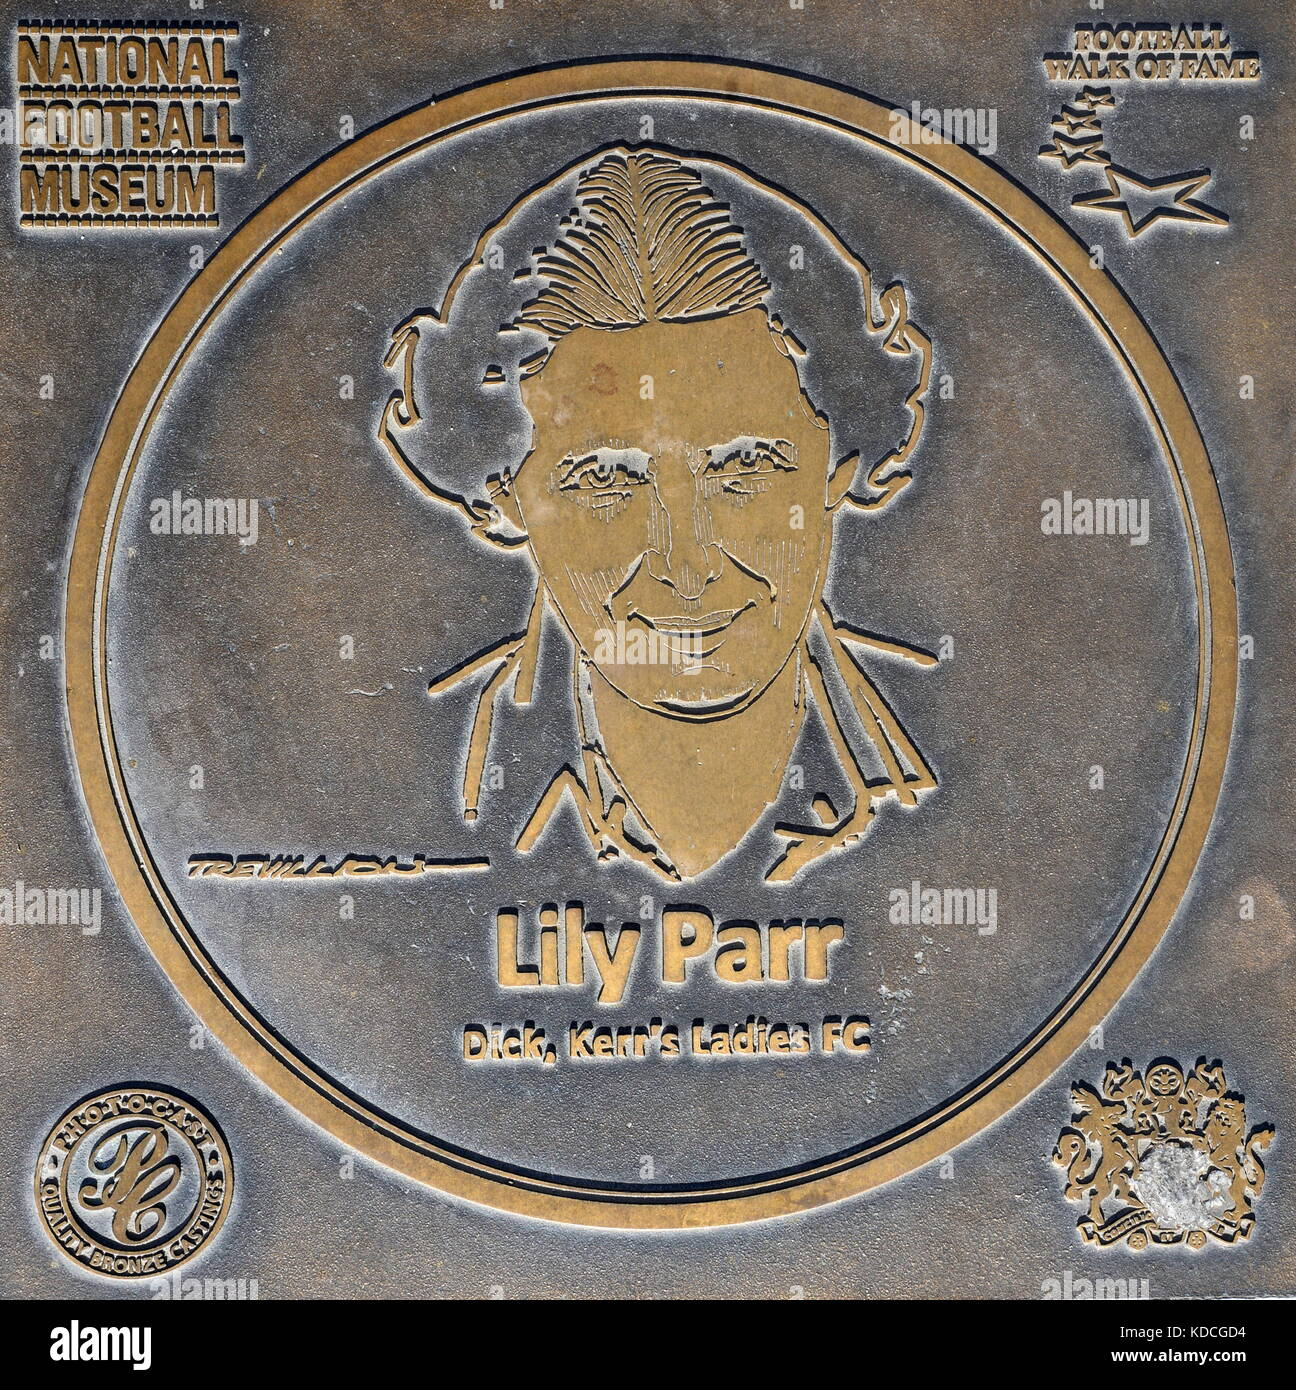 Lily Parr plaque at the National Football Museum - Stock Image